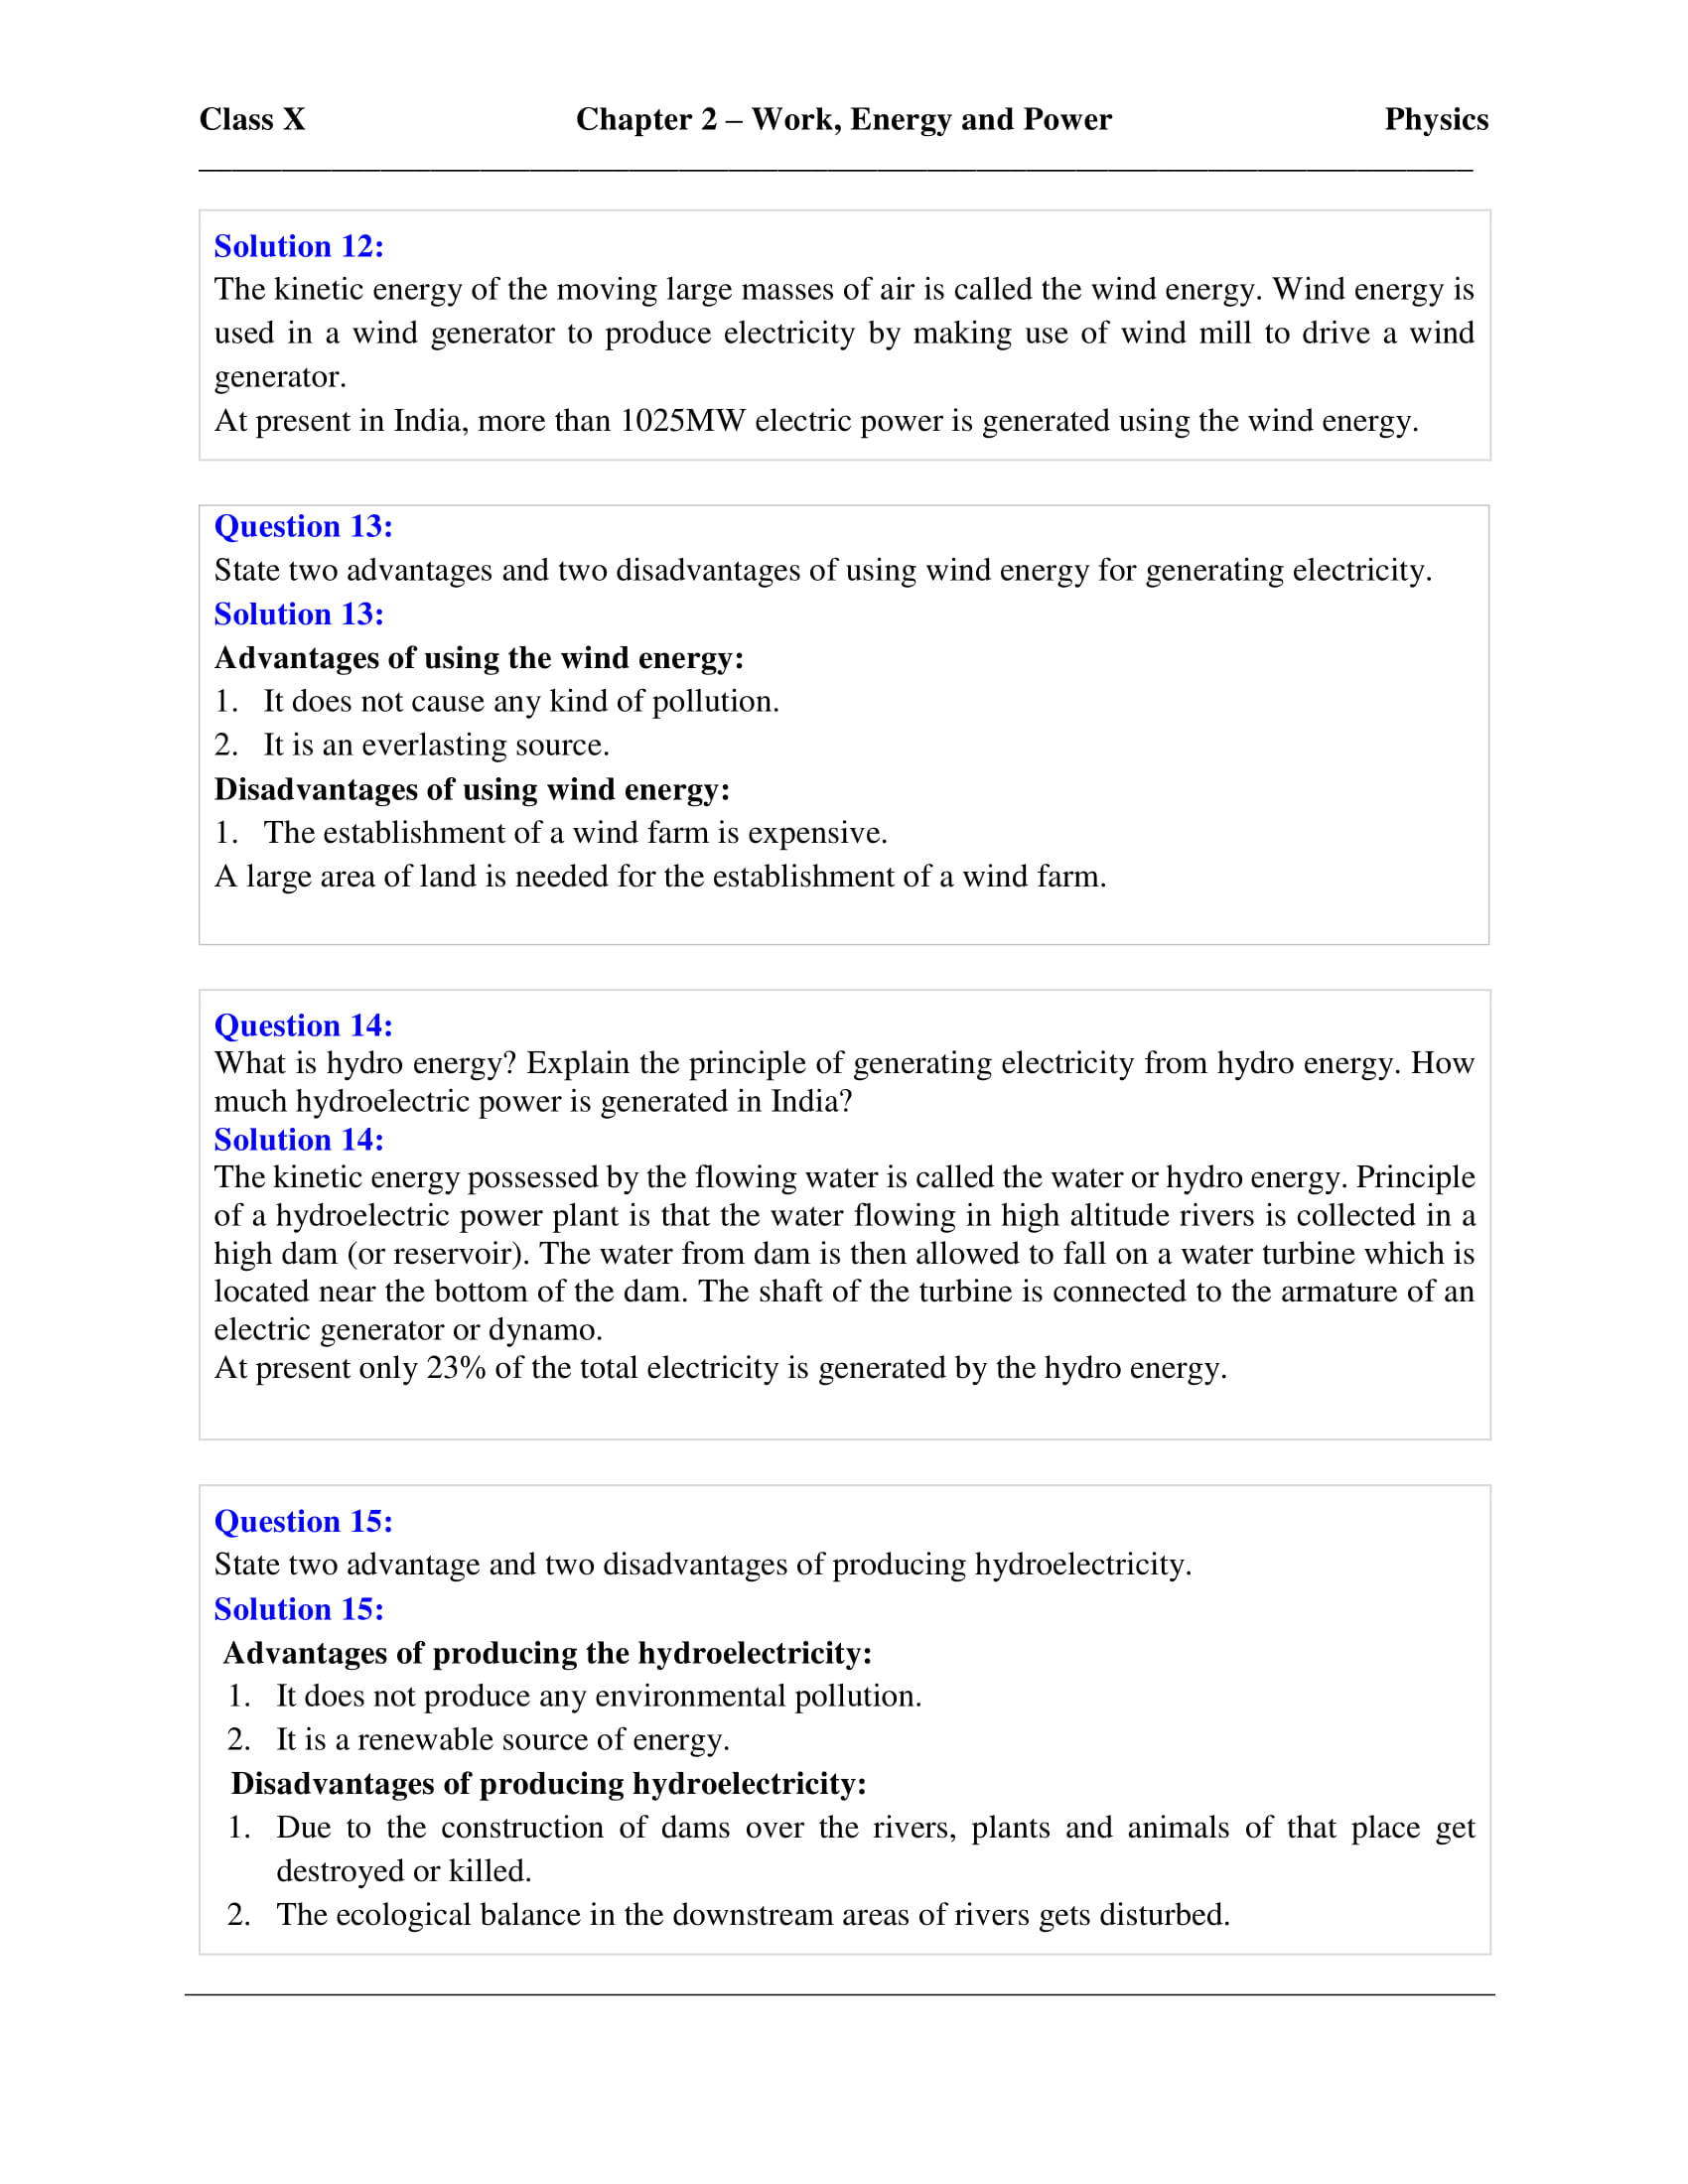 ICSE Solutions Class 10 Physics Chapter 2 Work Energy Power